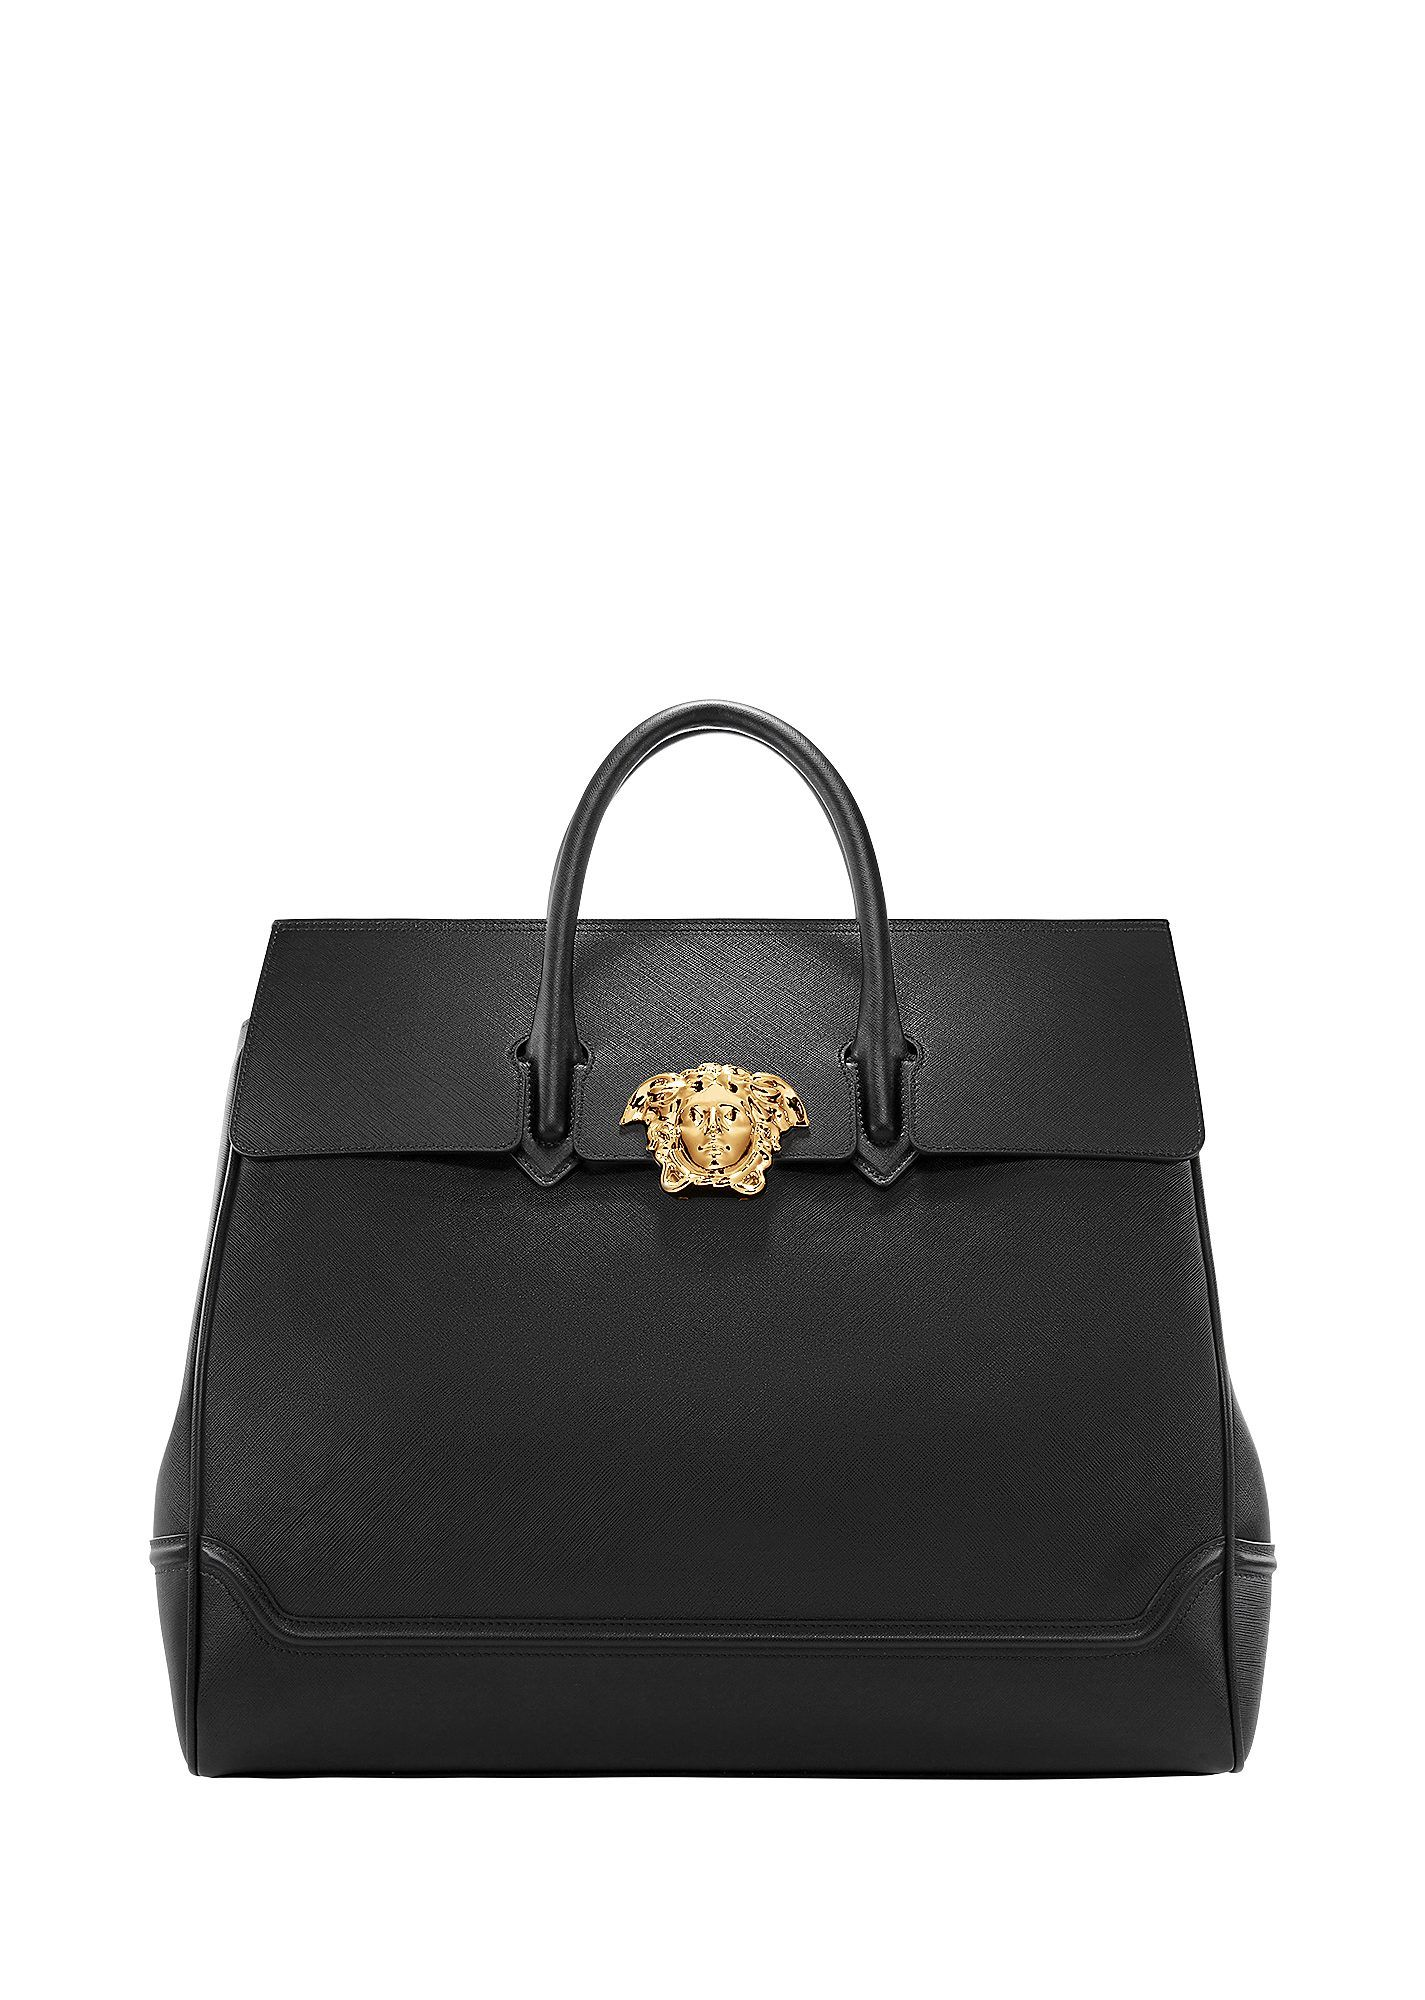 b4112b91afbd VERSACE Palazzo Leather Tote Bag.  versace  bags  leather  hand bags  linen   tote  lining